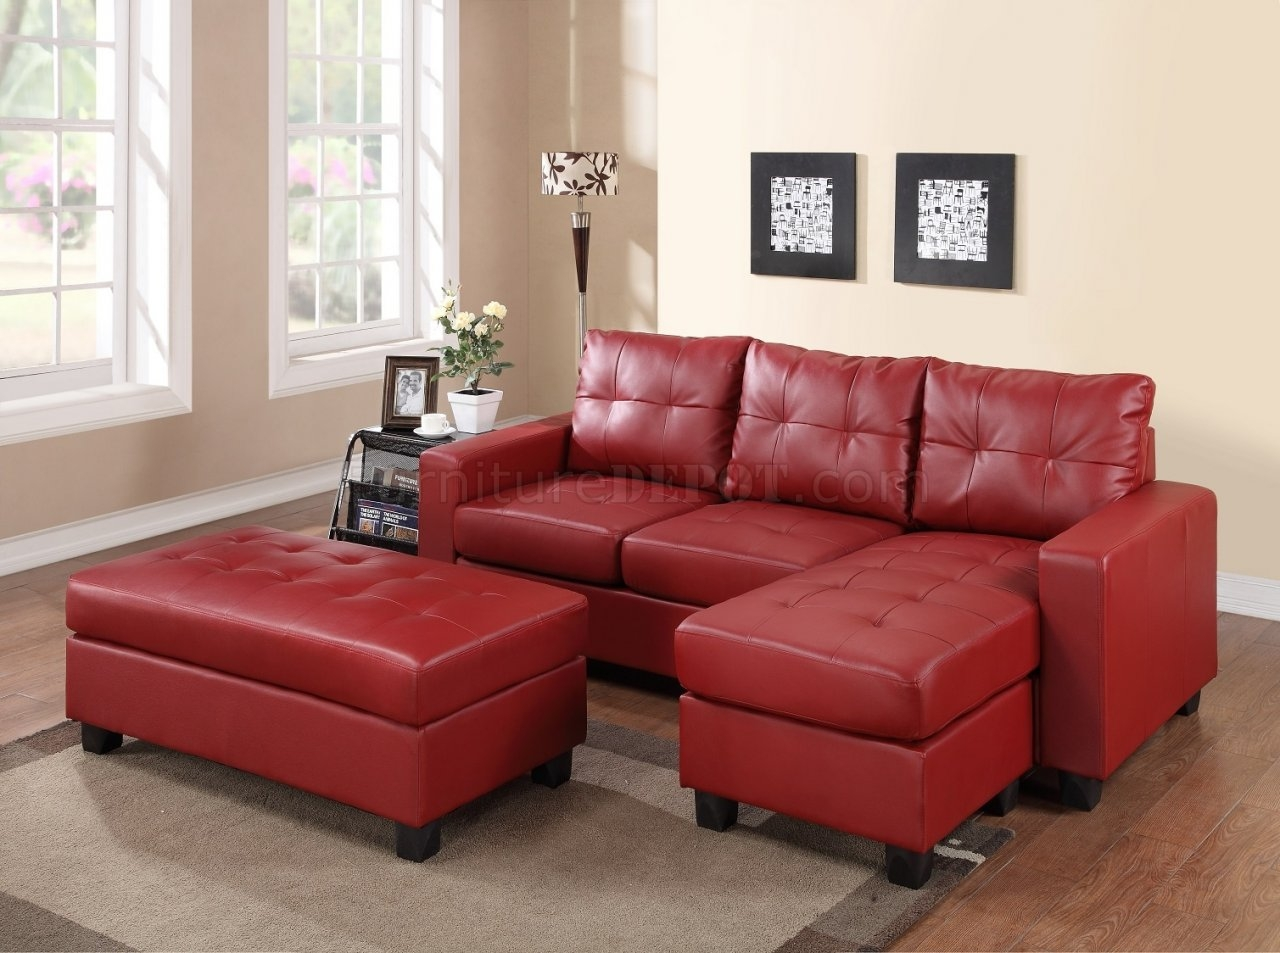 Sofas Luxury Your Living Room Sofas Design With Red Sectional For Curved Sectional Sofa With Recliner (Image 14 of 15)